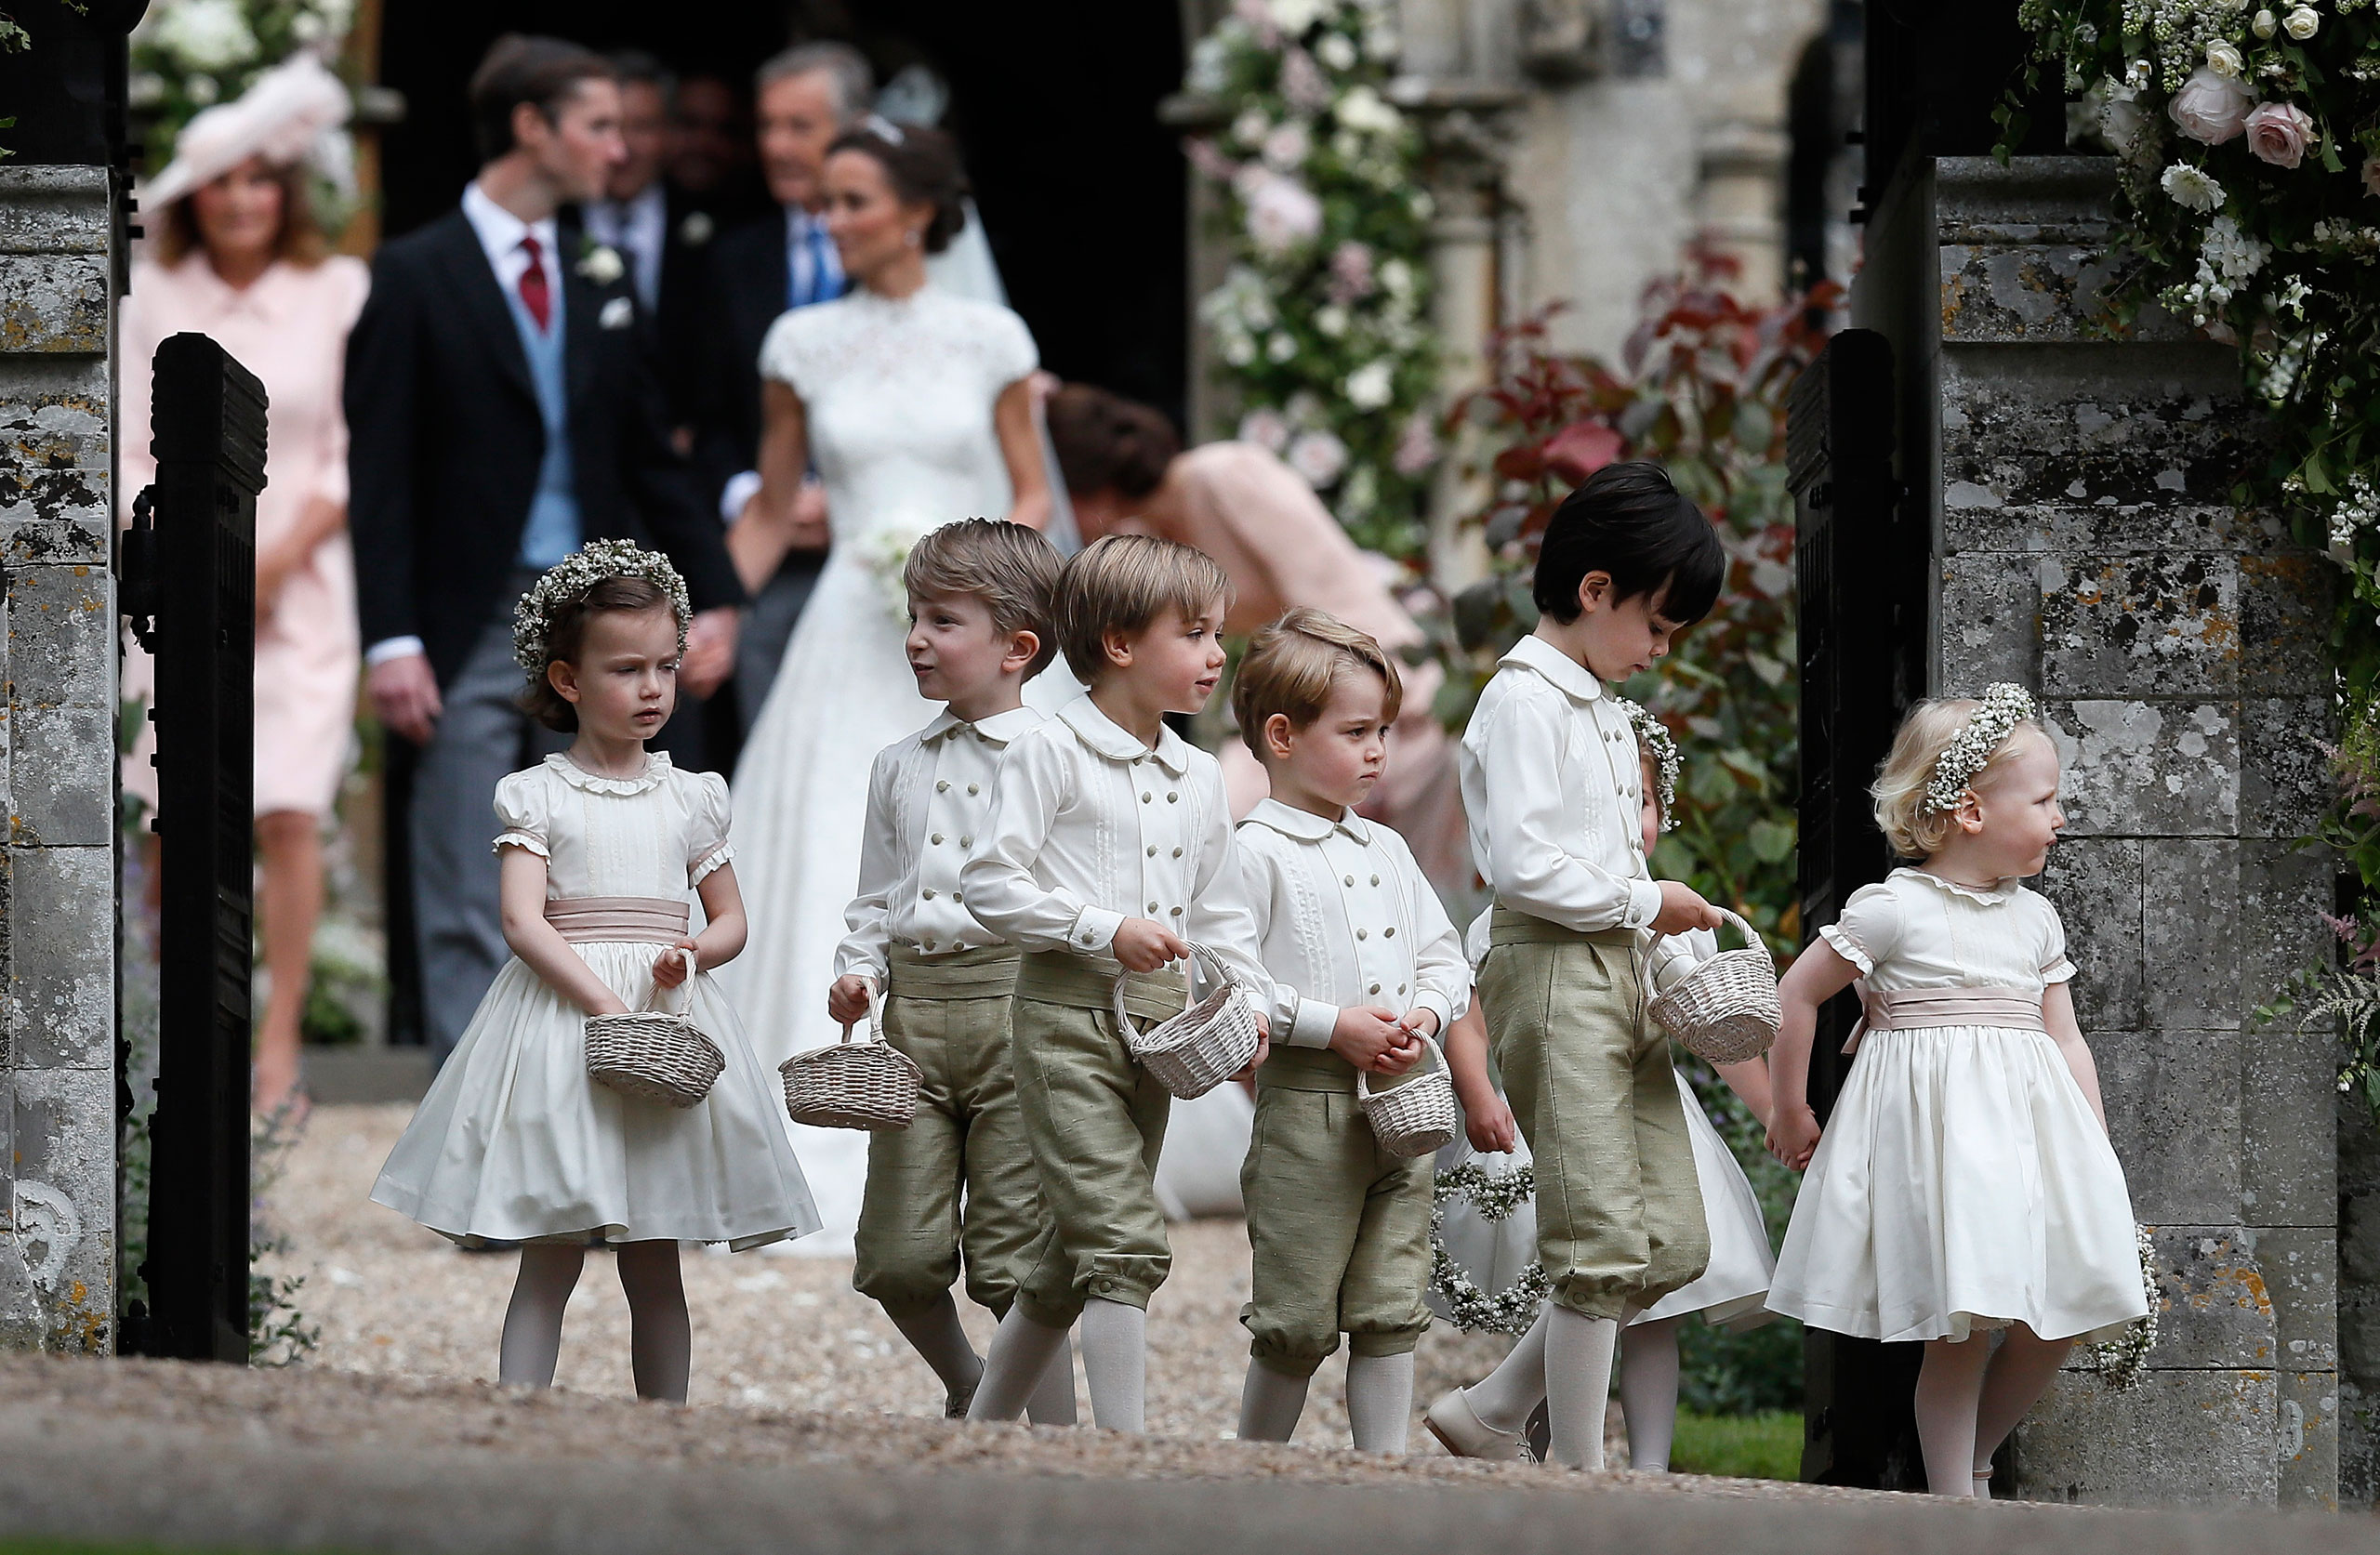 Prince George, fourth left, stands with other flower boys and girls after the wedding of Pippa Middleton and James Matthews at St Mark's Church on May 20, 2017 in Englefield, England.